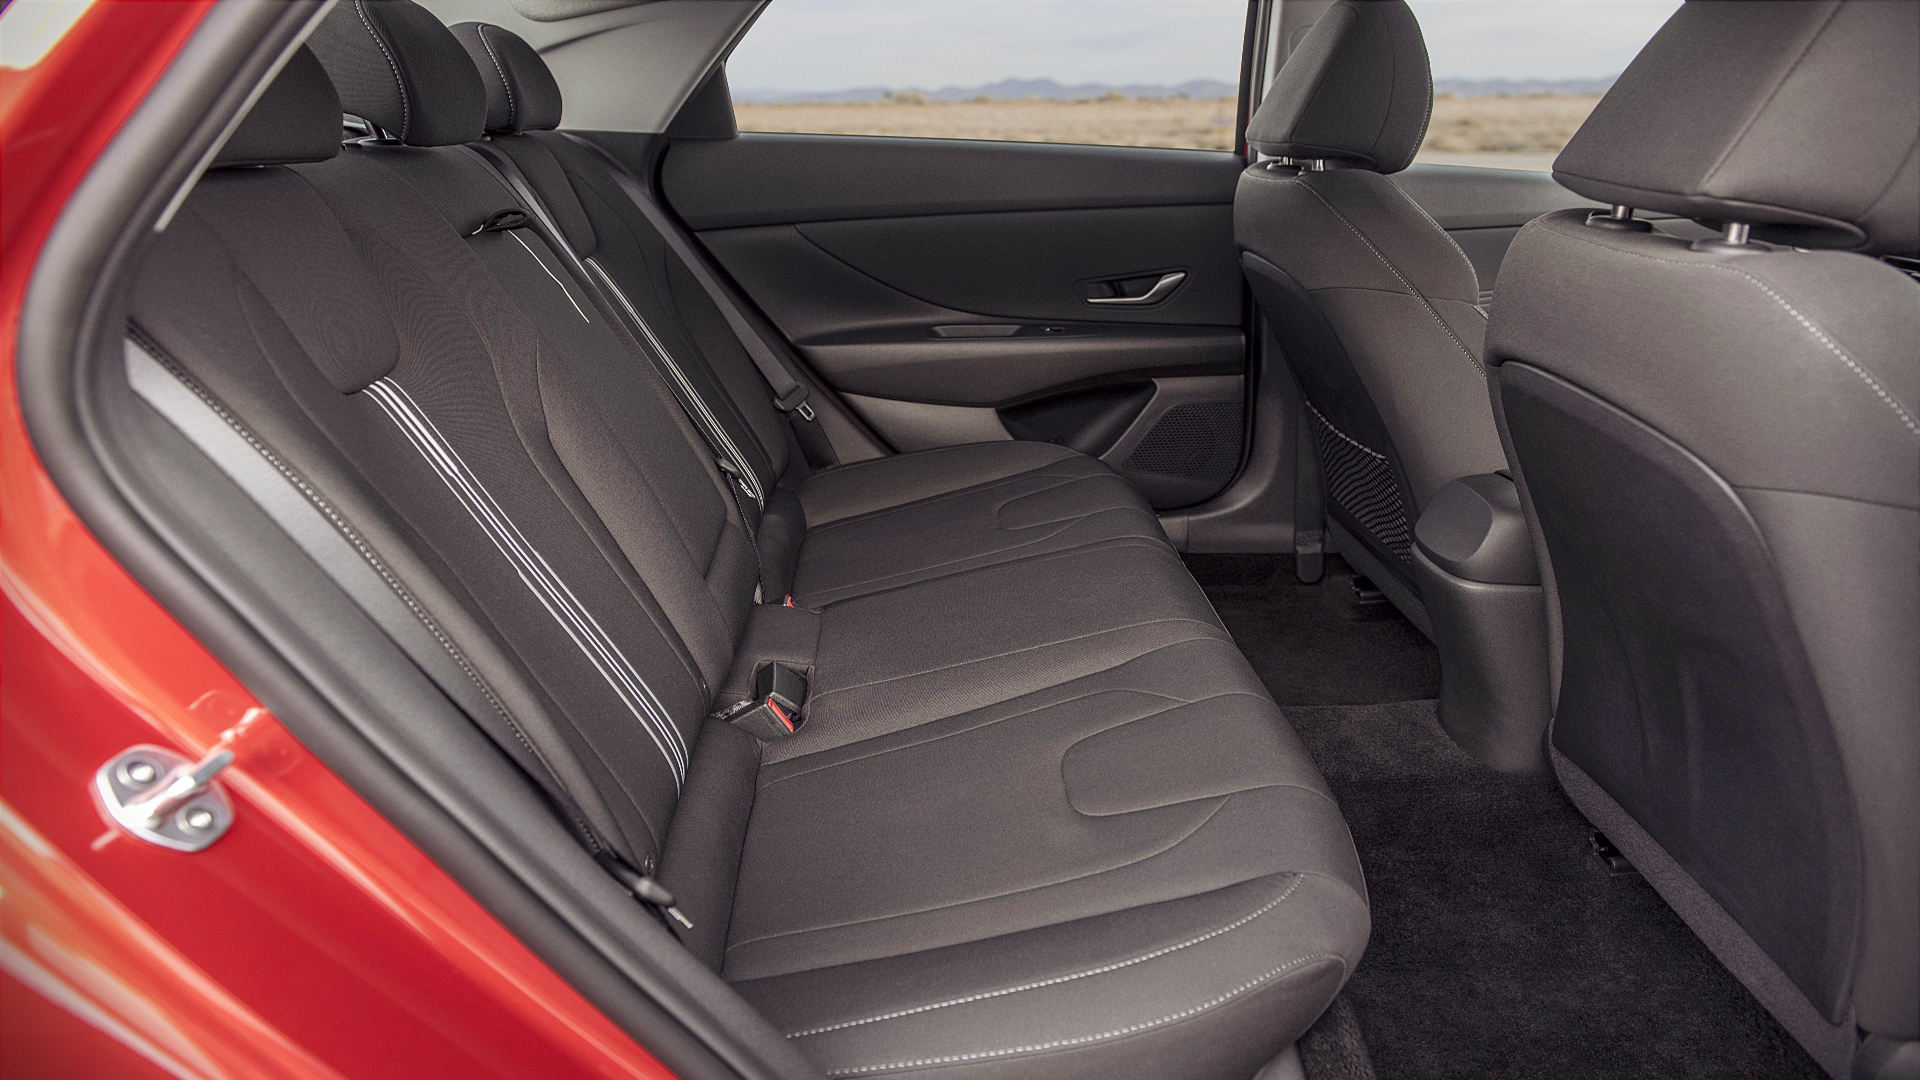 2021 Hyundai Elantra Seats Wallpaper